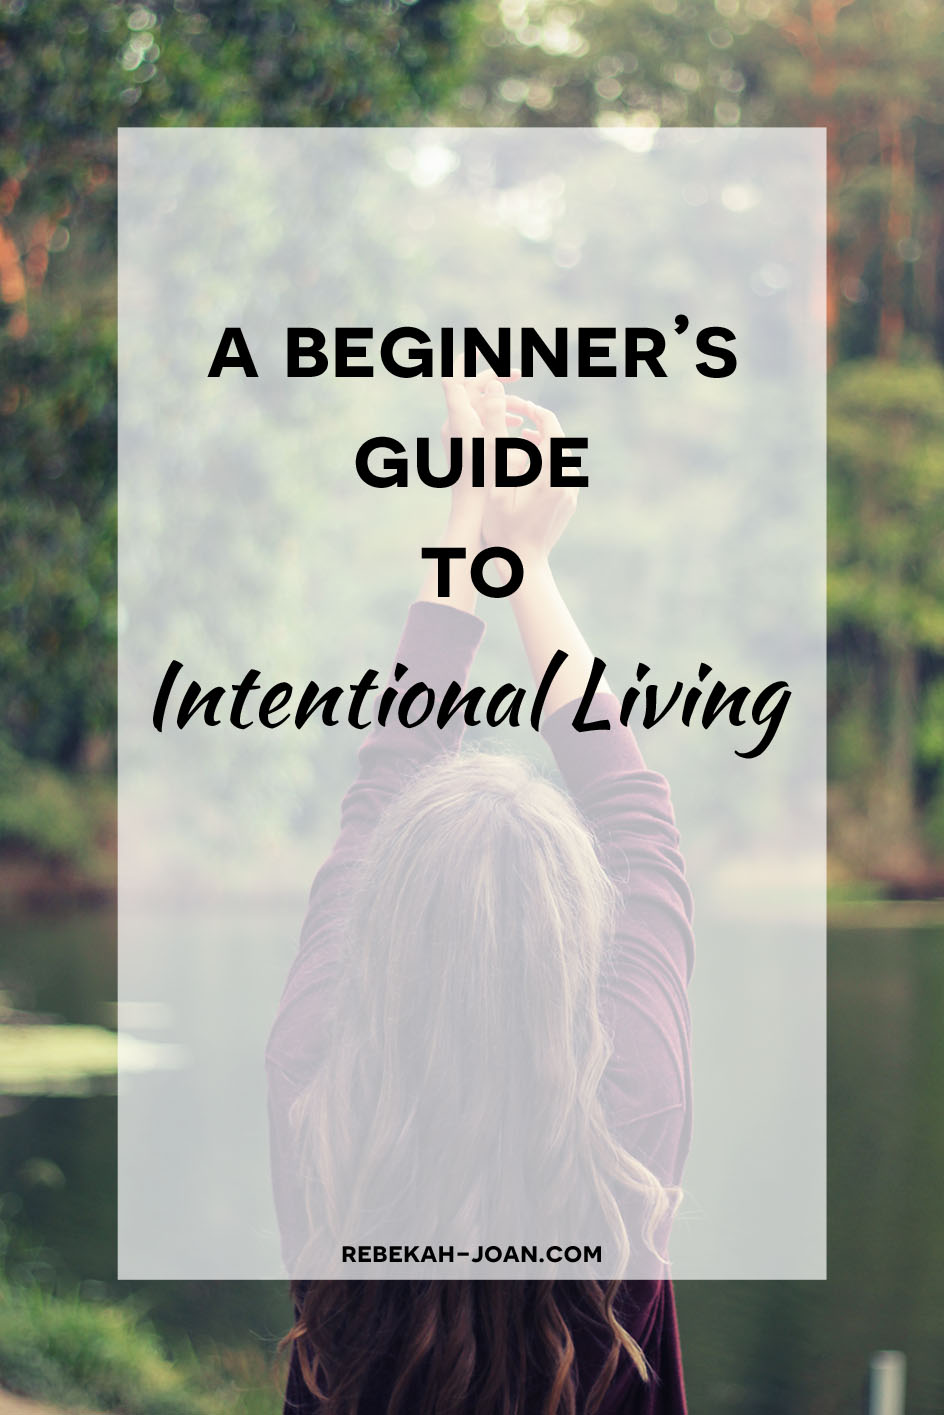 - Living with glazed-over, bored eyes and no goals is a terrible way to go through life. So what can you change? Learn how to live intentionally so that you can live a fulfilling life.